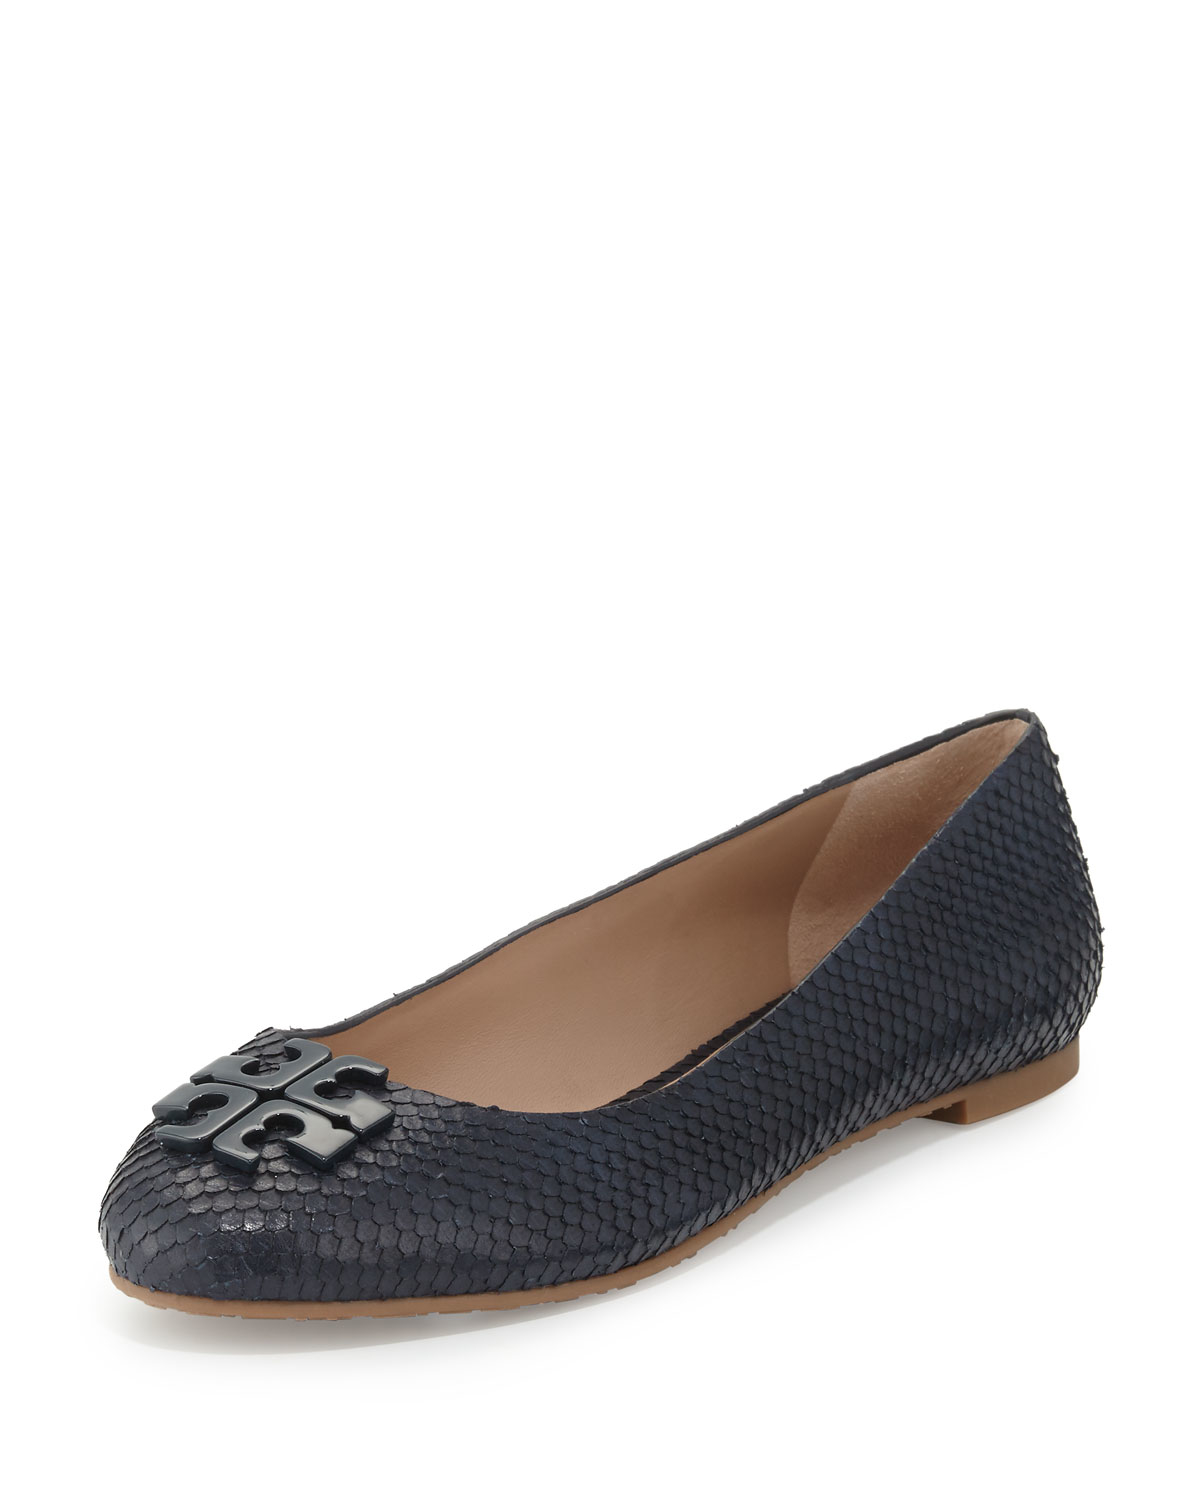 tory burch lowell 2 snake embossed ballet flats in blue lyst. Black Bedroom Furniture Sets. Home Design Ideas